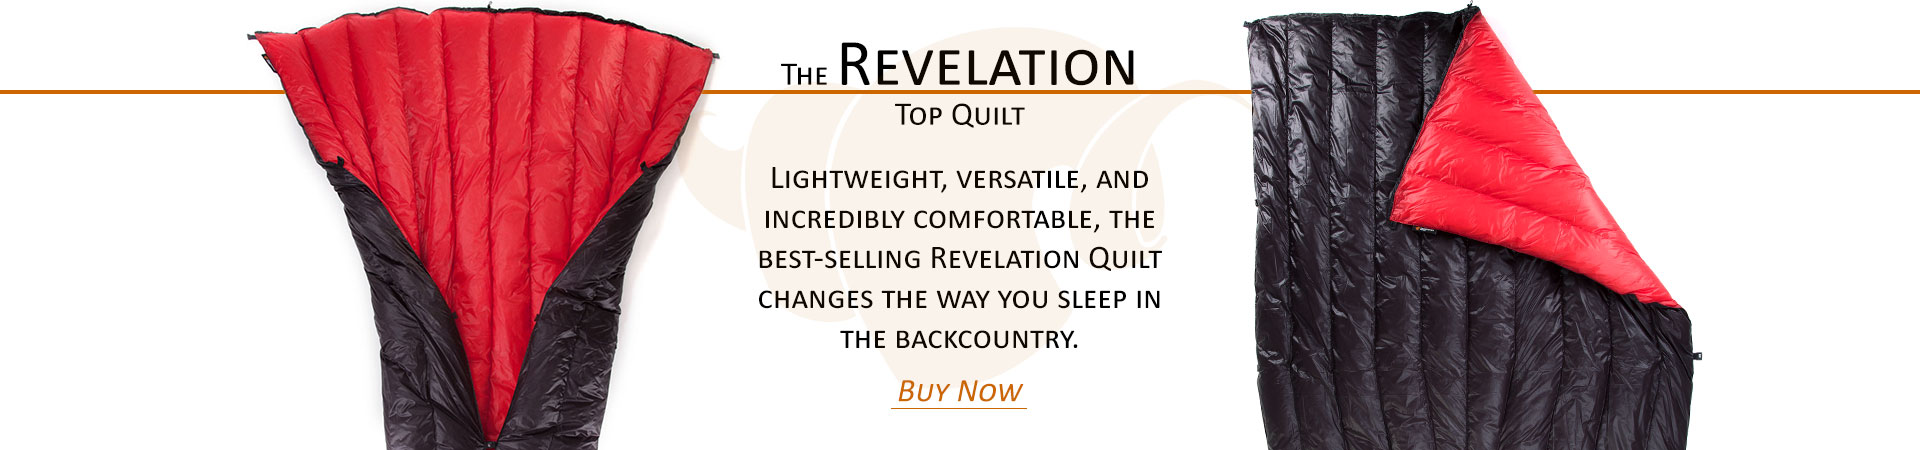 The Revelation Top Quilt  Lightweight, versatile, and incredibly comfortable, the best-selling Revelation Quilt changes the way you sleep in the backcountry.